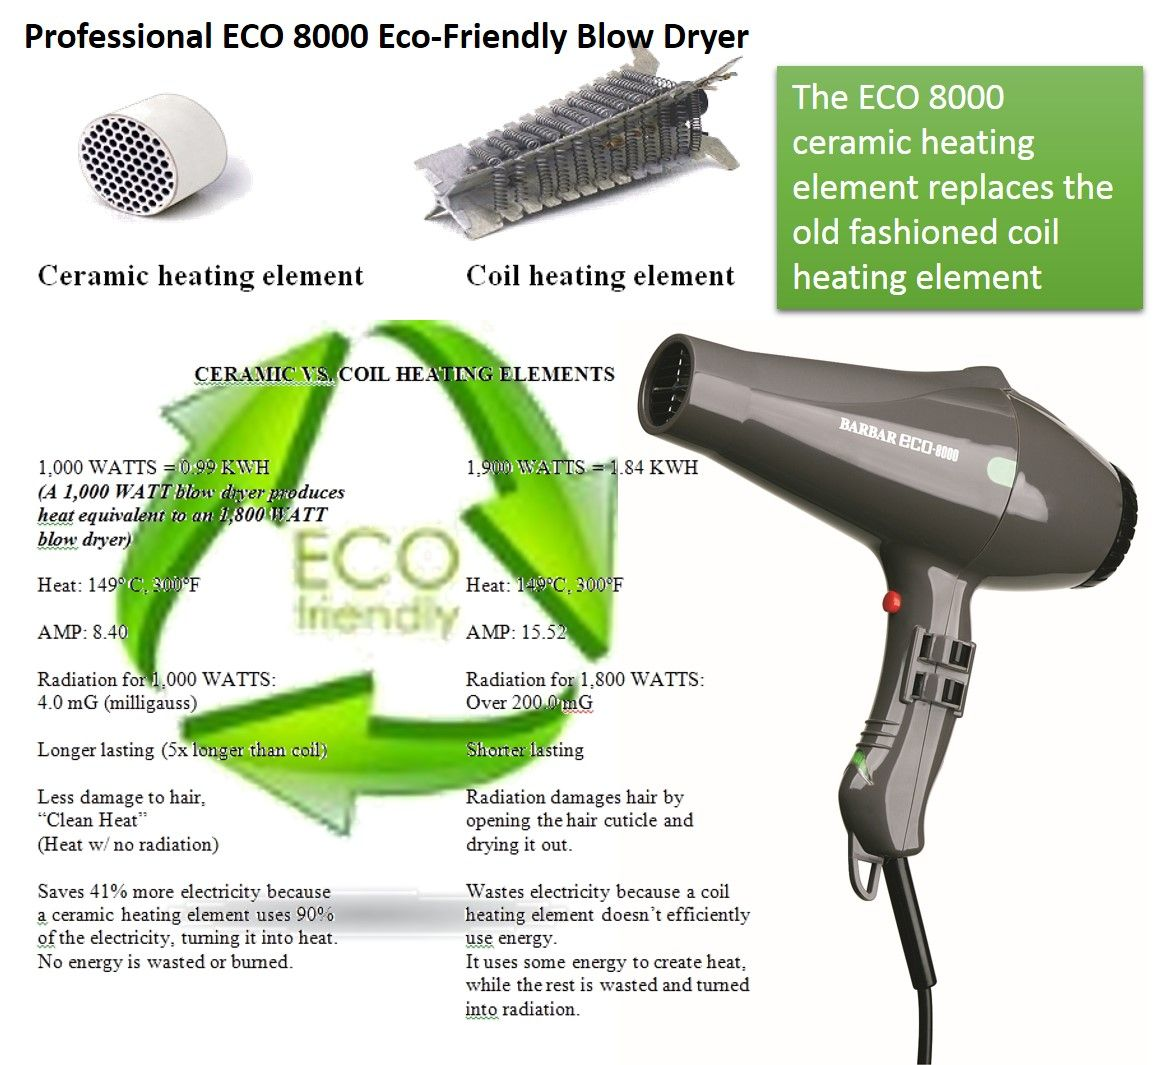 Apply promo code pinter8000 at checkout and receive 25% off (only at globalsalon.com)! Blow dryers use coil heating elements. Coil heat emits over 200 mG (milligauss) of EMF, equivalent to a microwave.  Wowza! The BARBAR Eco 8000 Eco-Friendly Blow Dryer emits a mere 4.1 mG. It also saves 40% more electricity than a standard dryer.